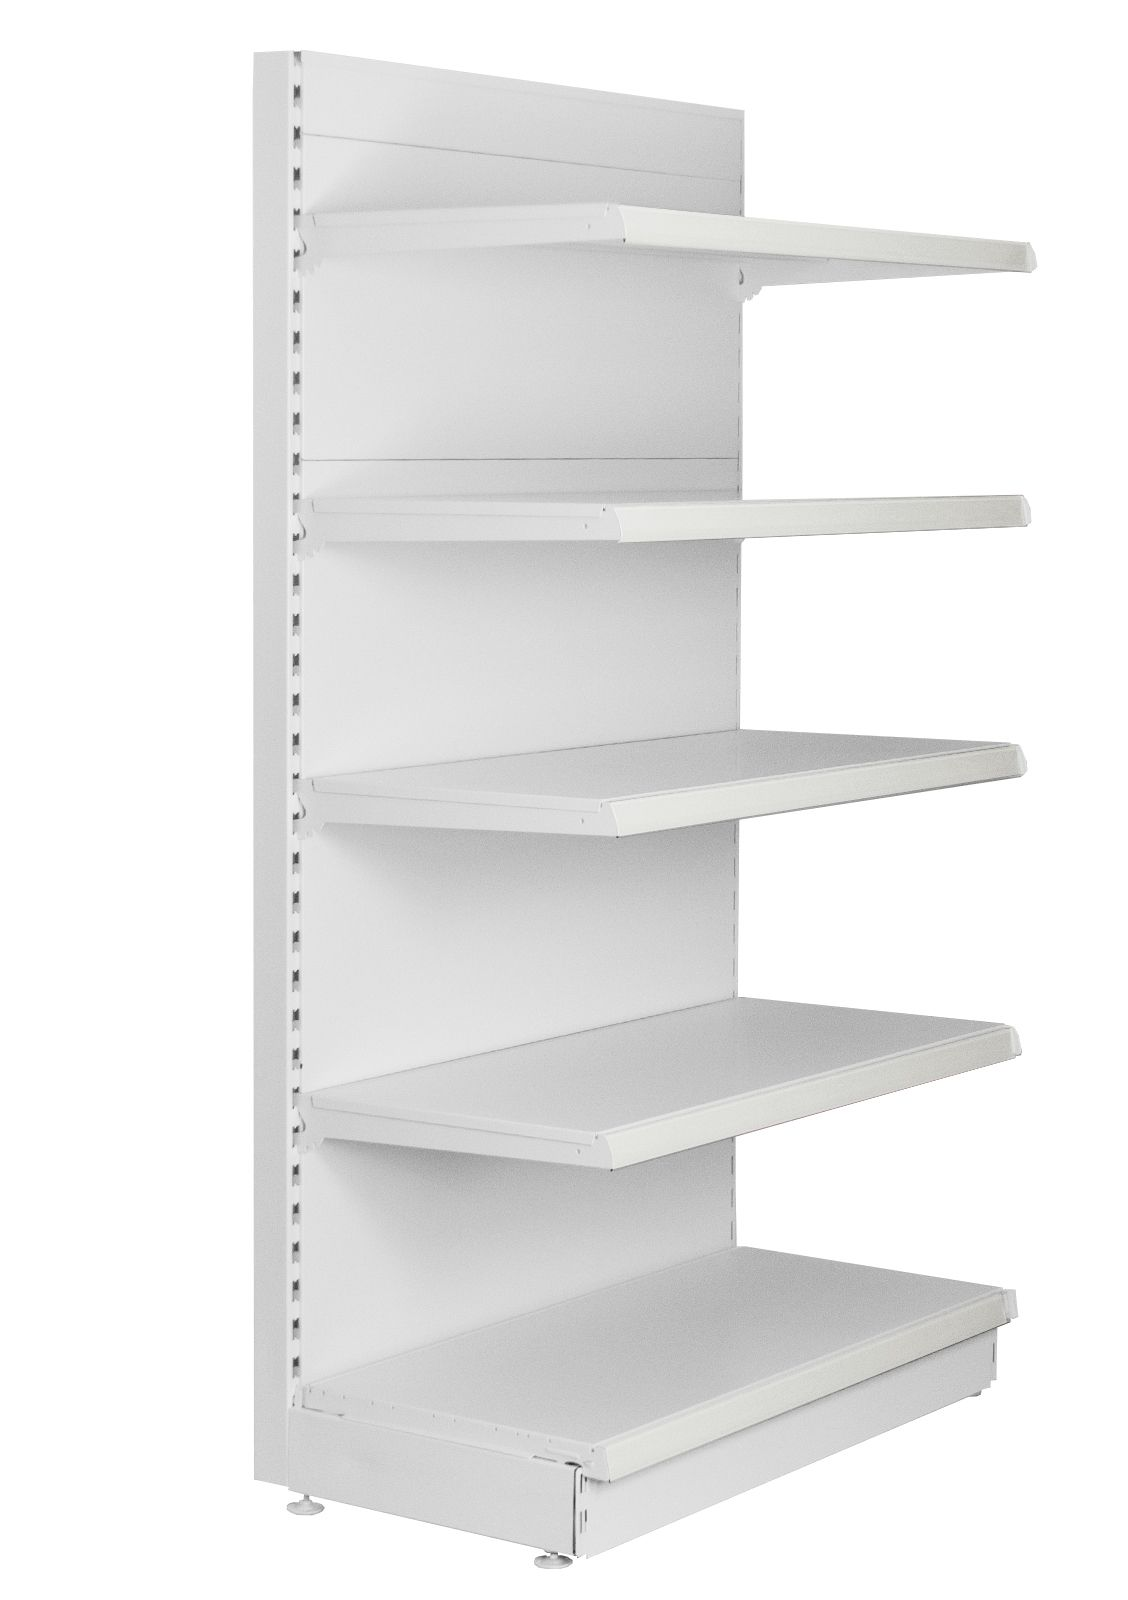 separation shoes f1344 ad980 Shop Shelving | shop shelving | Retail shelving, Shop ...